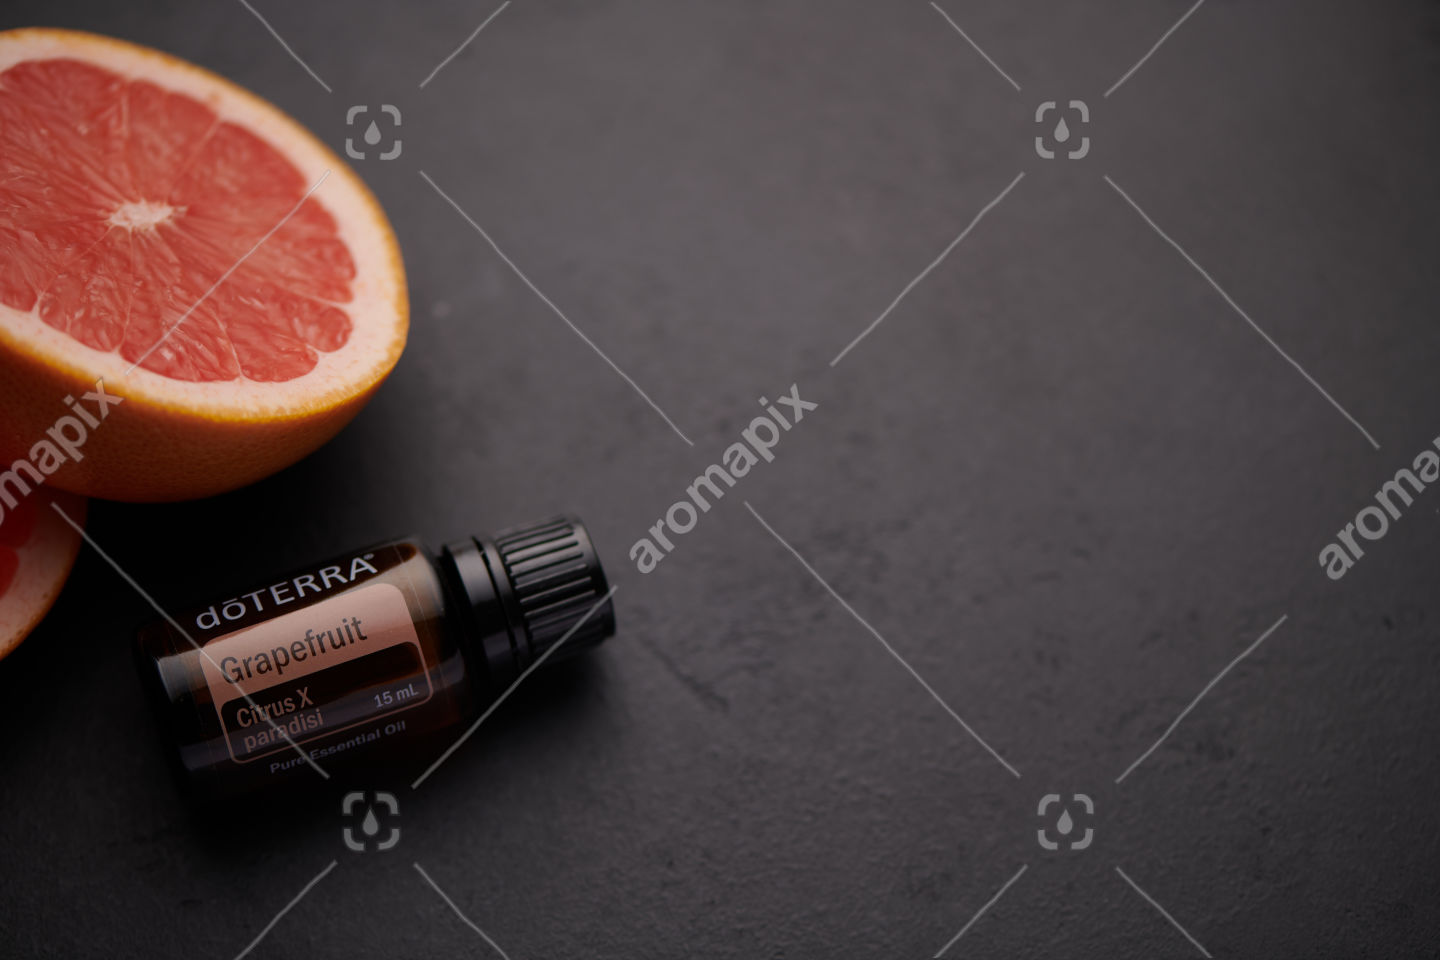 doTERRA Grapefruit product and grapefruit pieces on black background